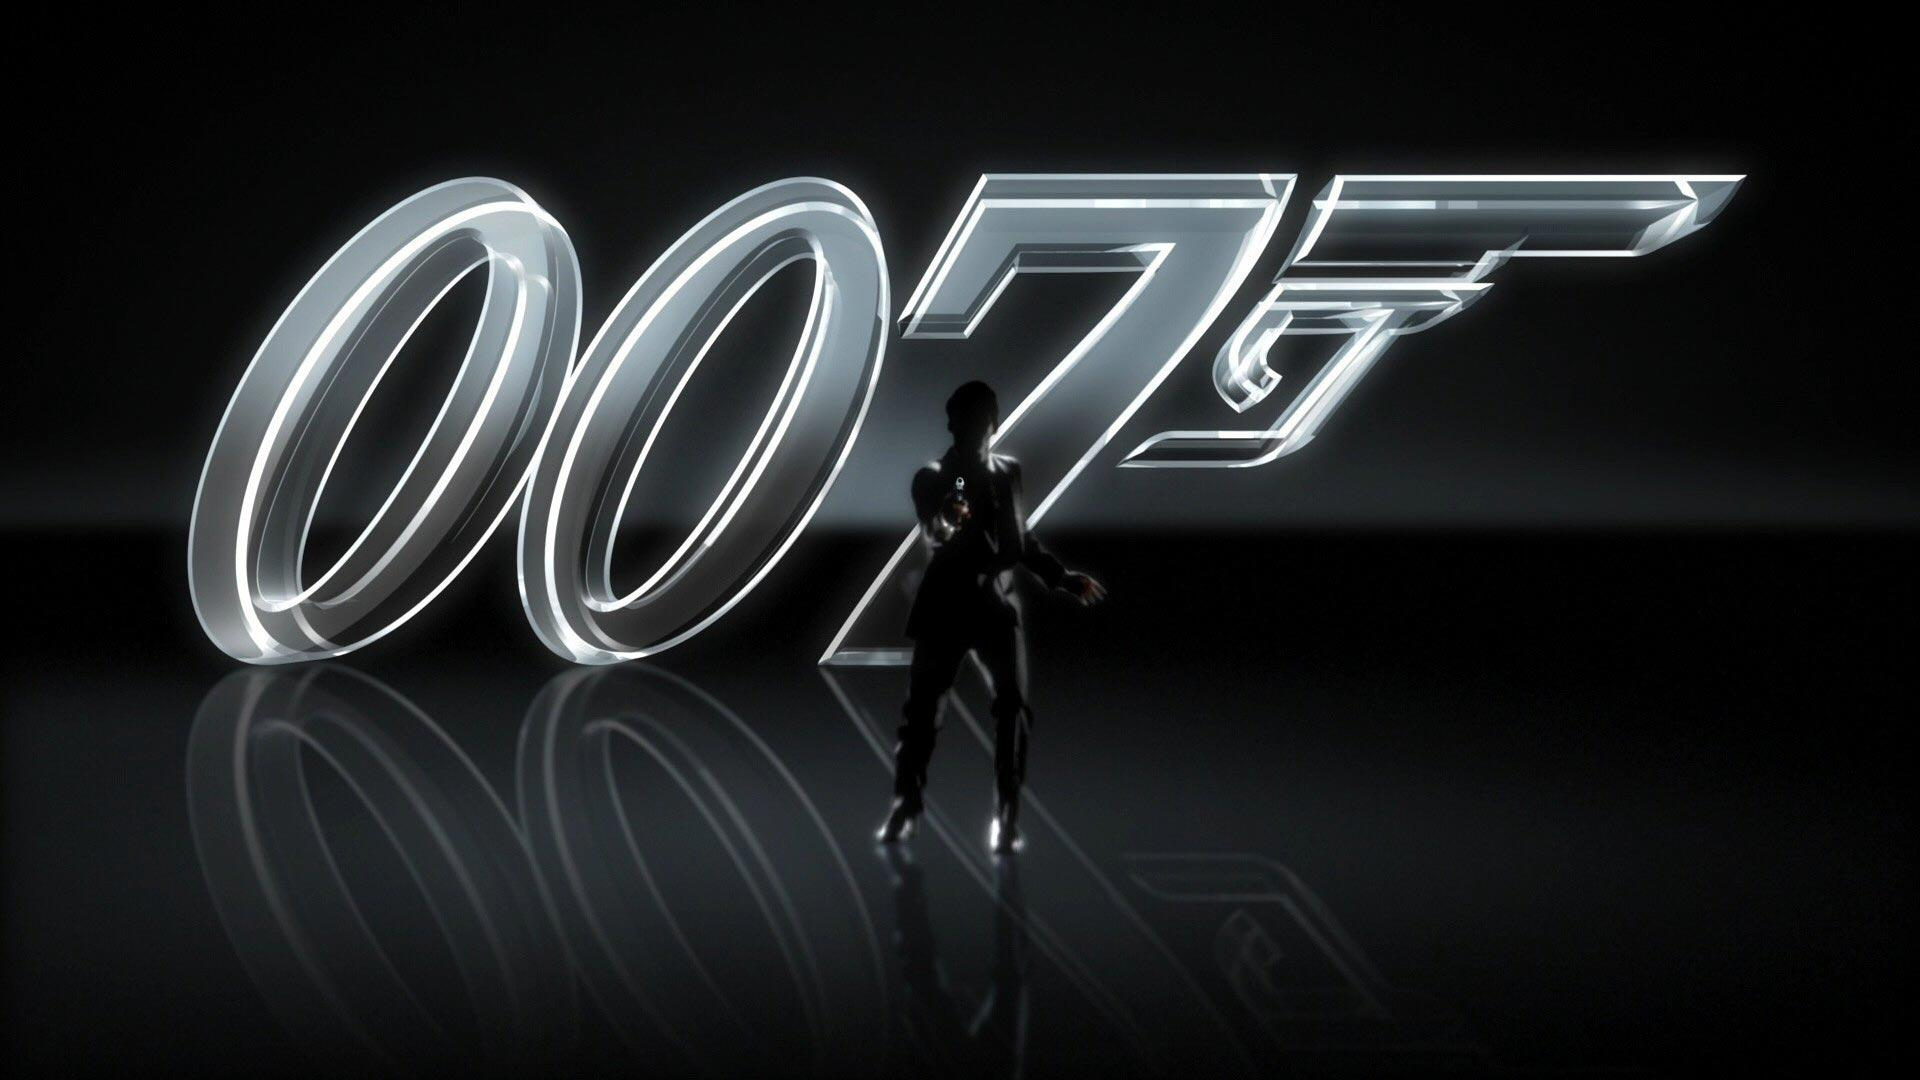 James Bond 3D 007 Wallpapers